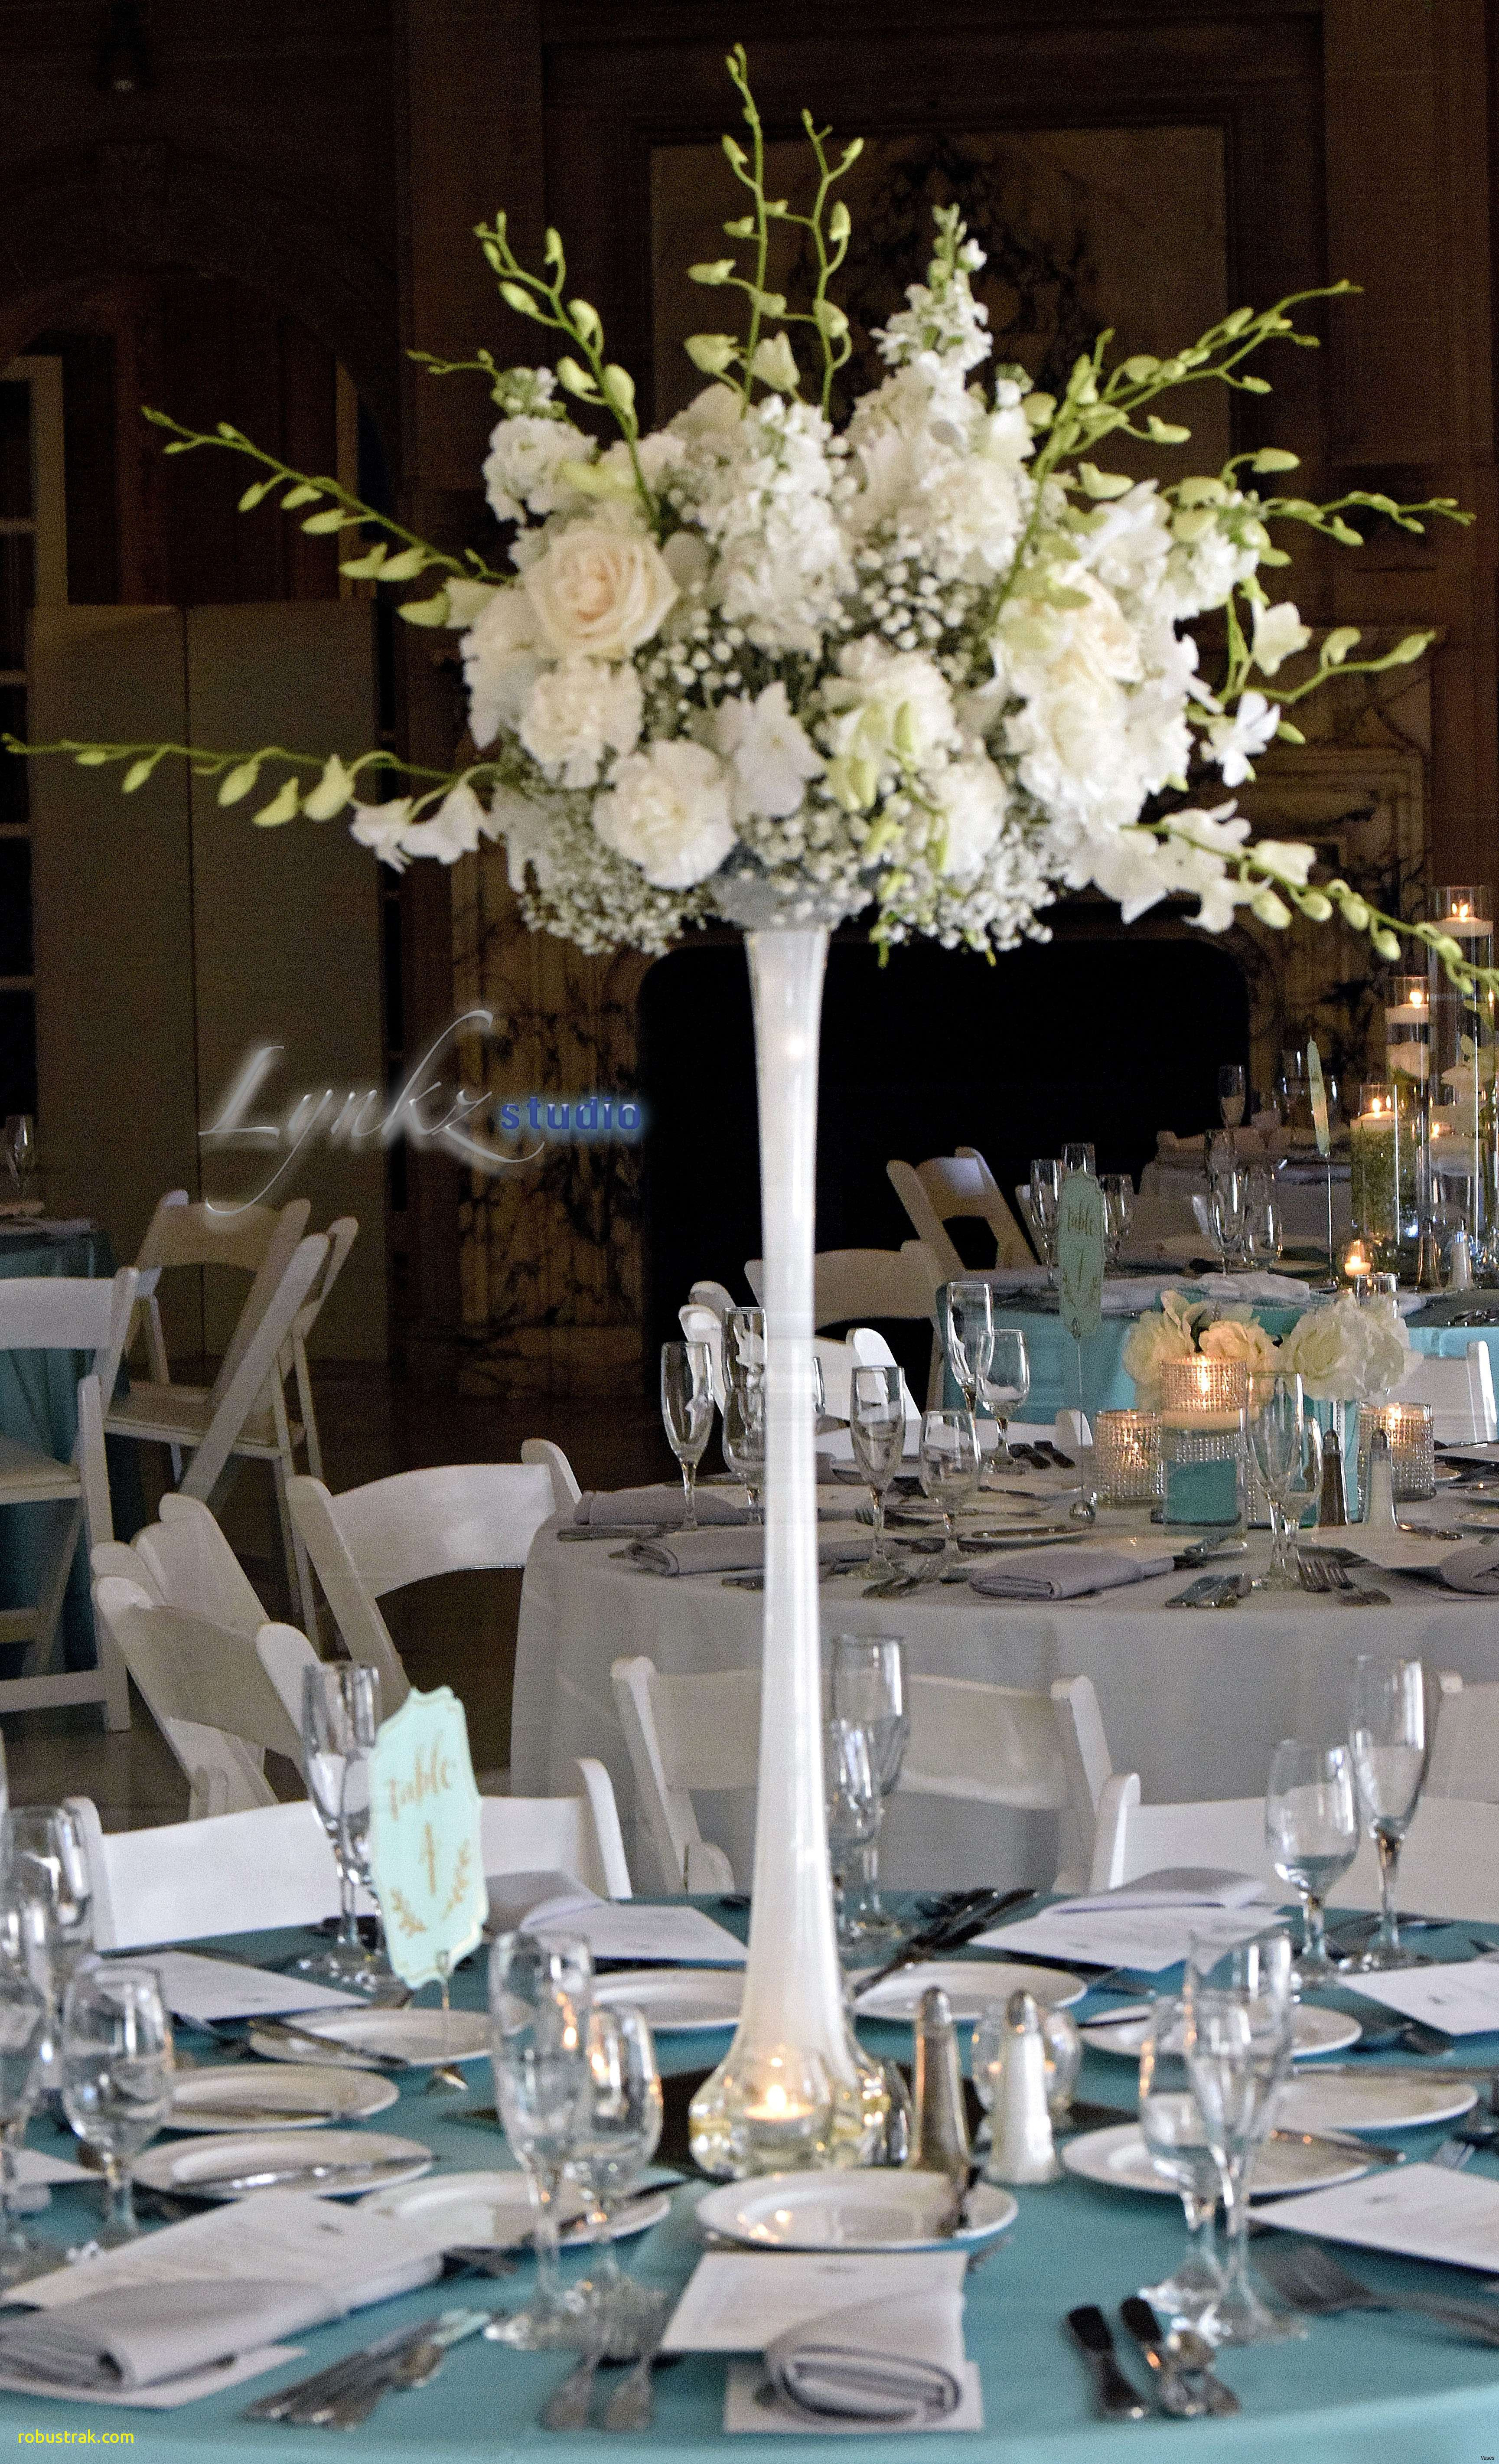 wedding centerpieces vases and candles of new nighttime wedding decorations home design ideas intended for vases eiffel tower vase lights hydrangea with grass vasei 0d scheme design ideas light decoration